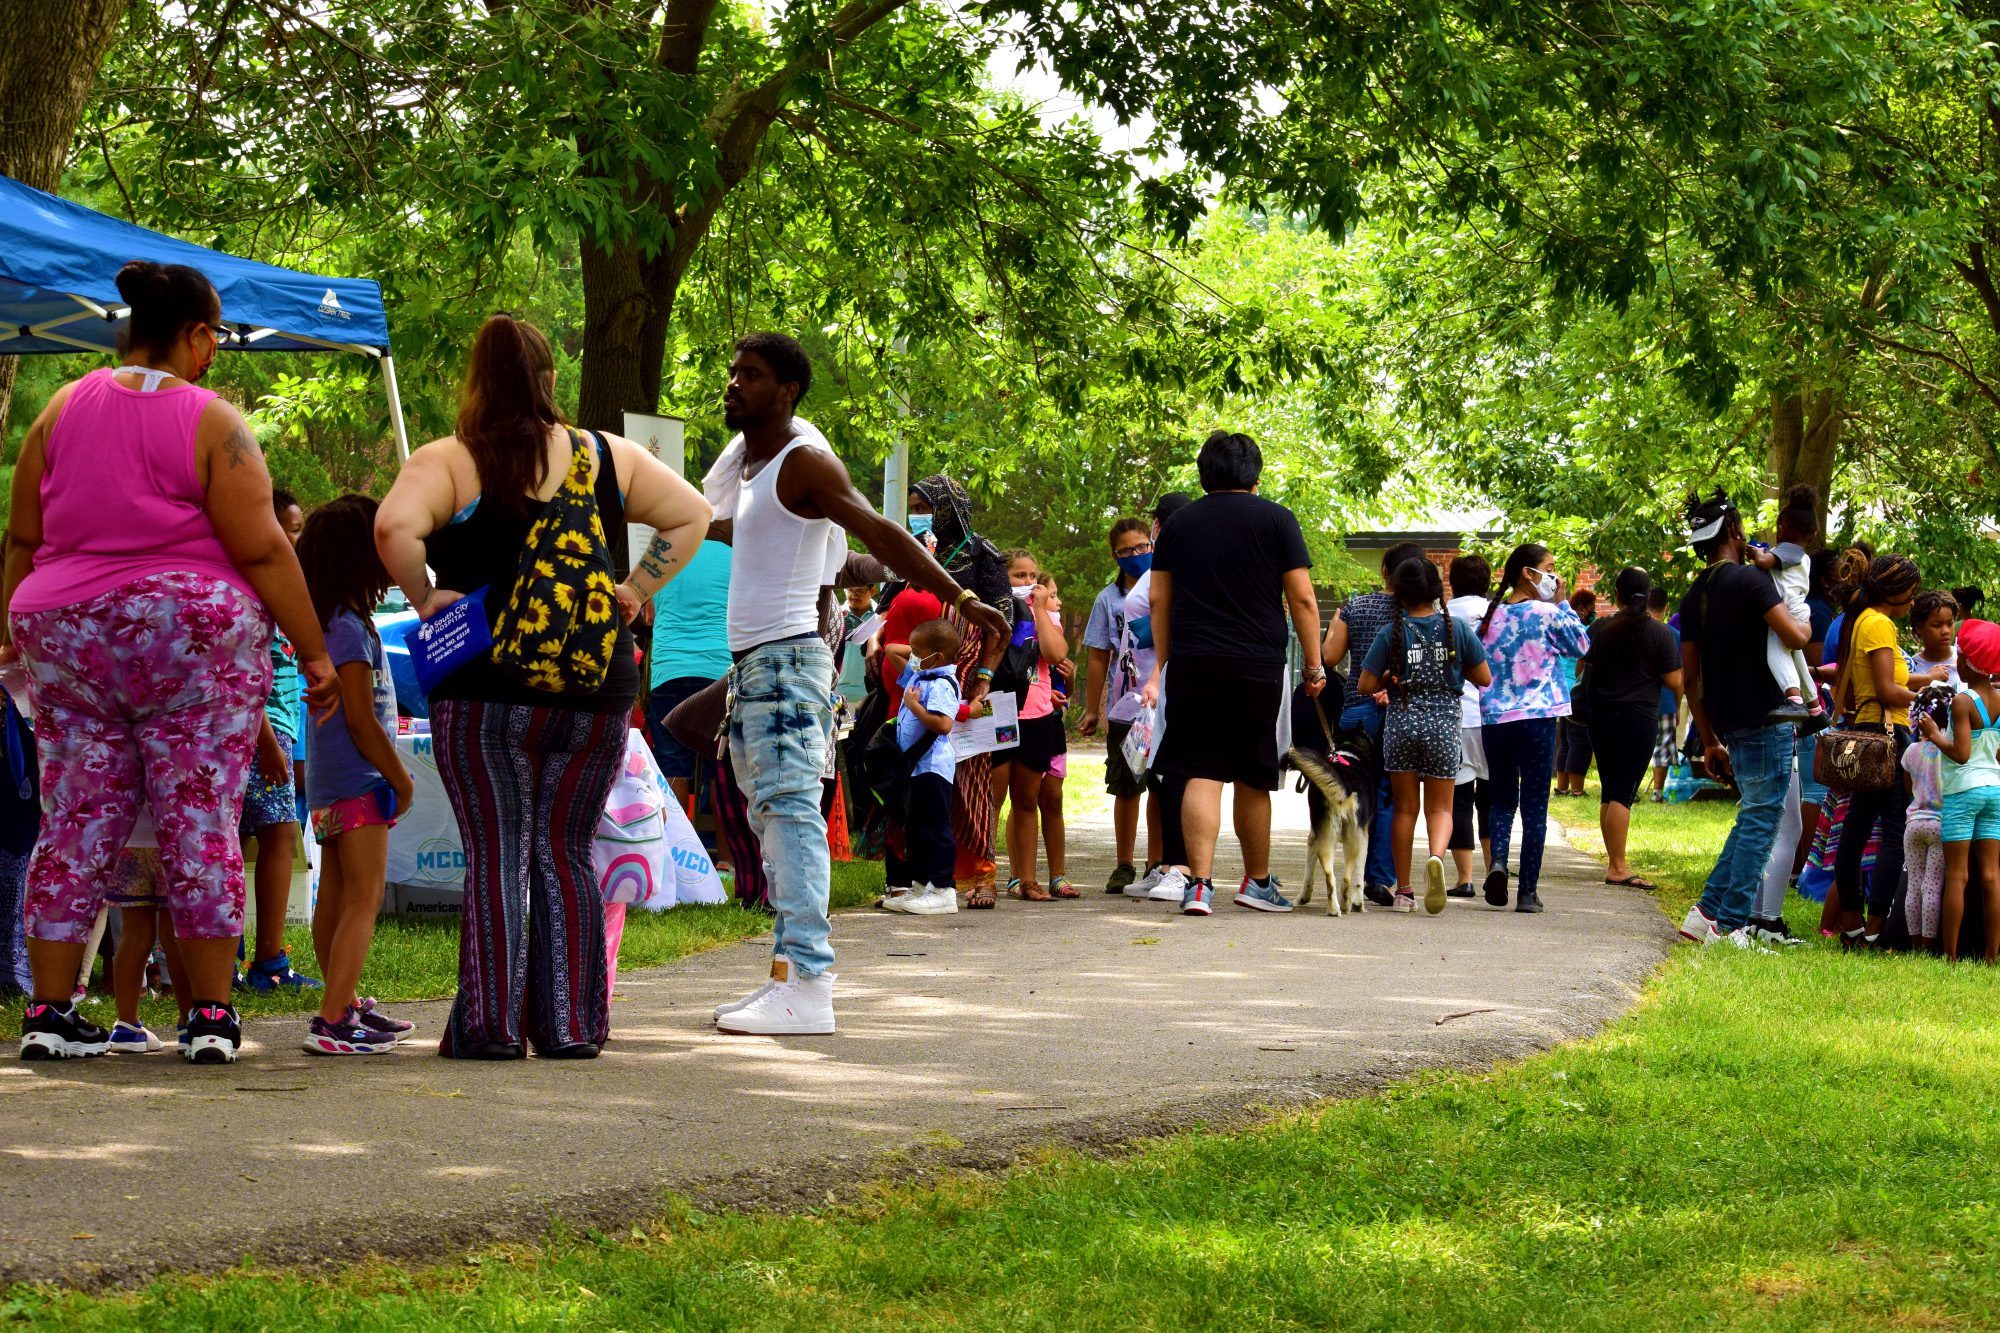 Crowds line up for backpacks and school supplies at Marquette Community Day in Dutchtown, St. Louis, MO.